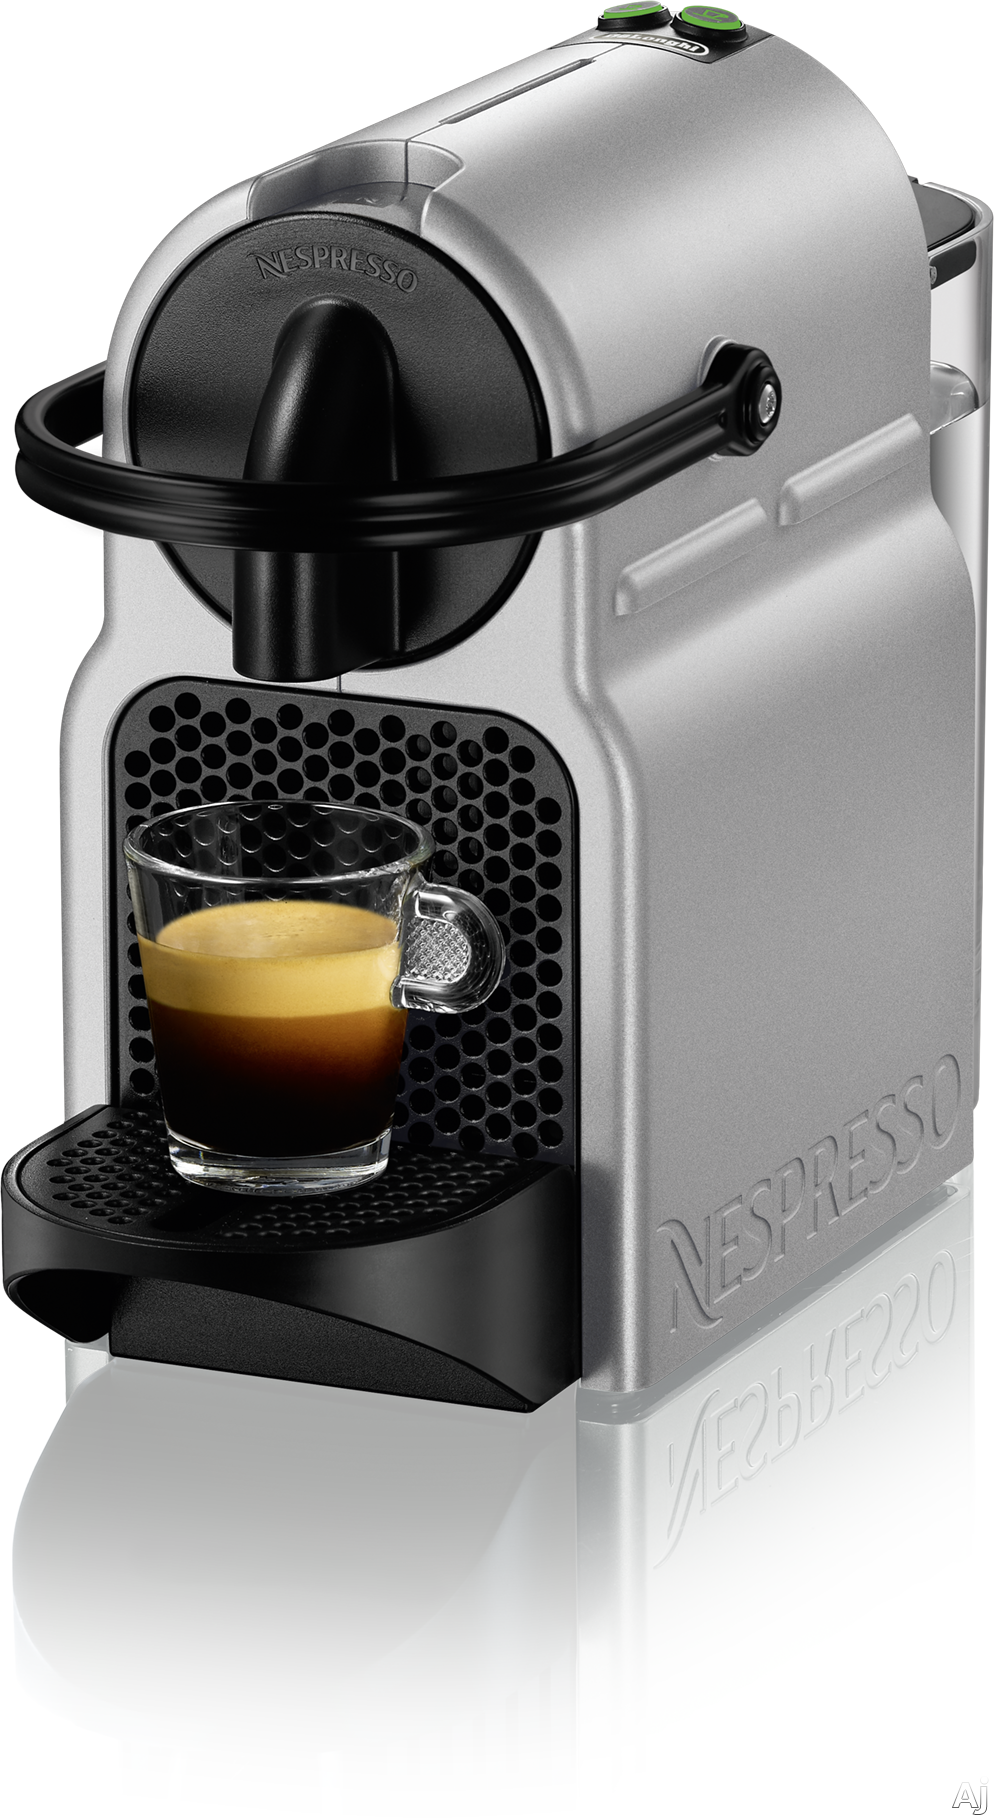 Nespresso Original Line EN80S Inissia Espresso Machine with 2 One Touch Presets, Fast Preheat, Auto Power-off, 16 Nespresso Capsule Tasting Pack, Folding Drip Tray, Auto Volume Control and High-Pressu